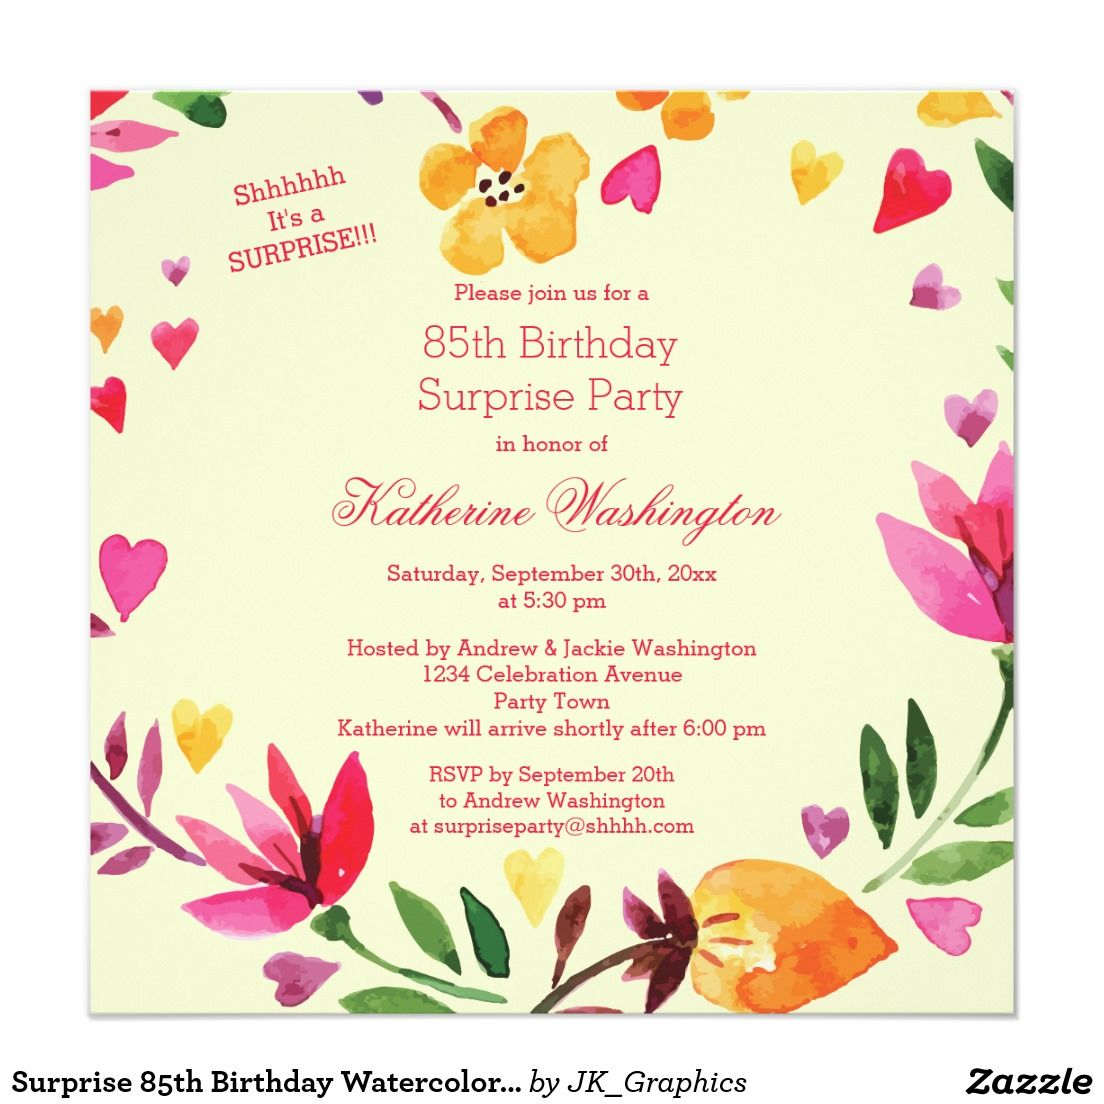 Surprise 85th Birthday Watercolor Floral Heart Card Invitation